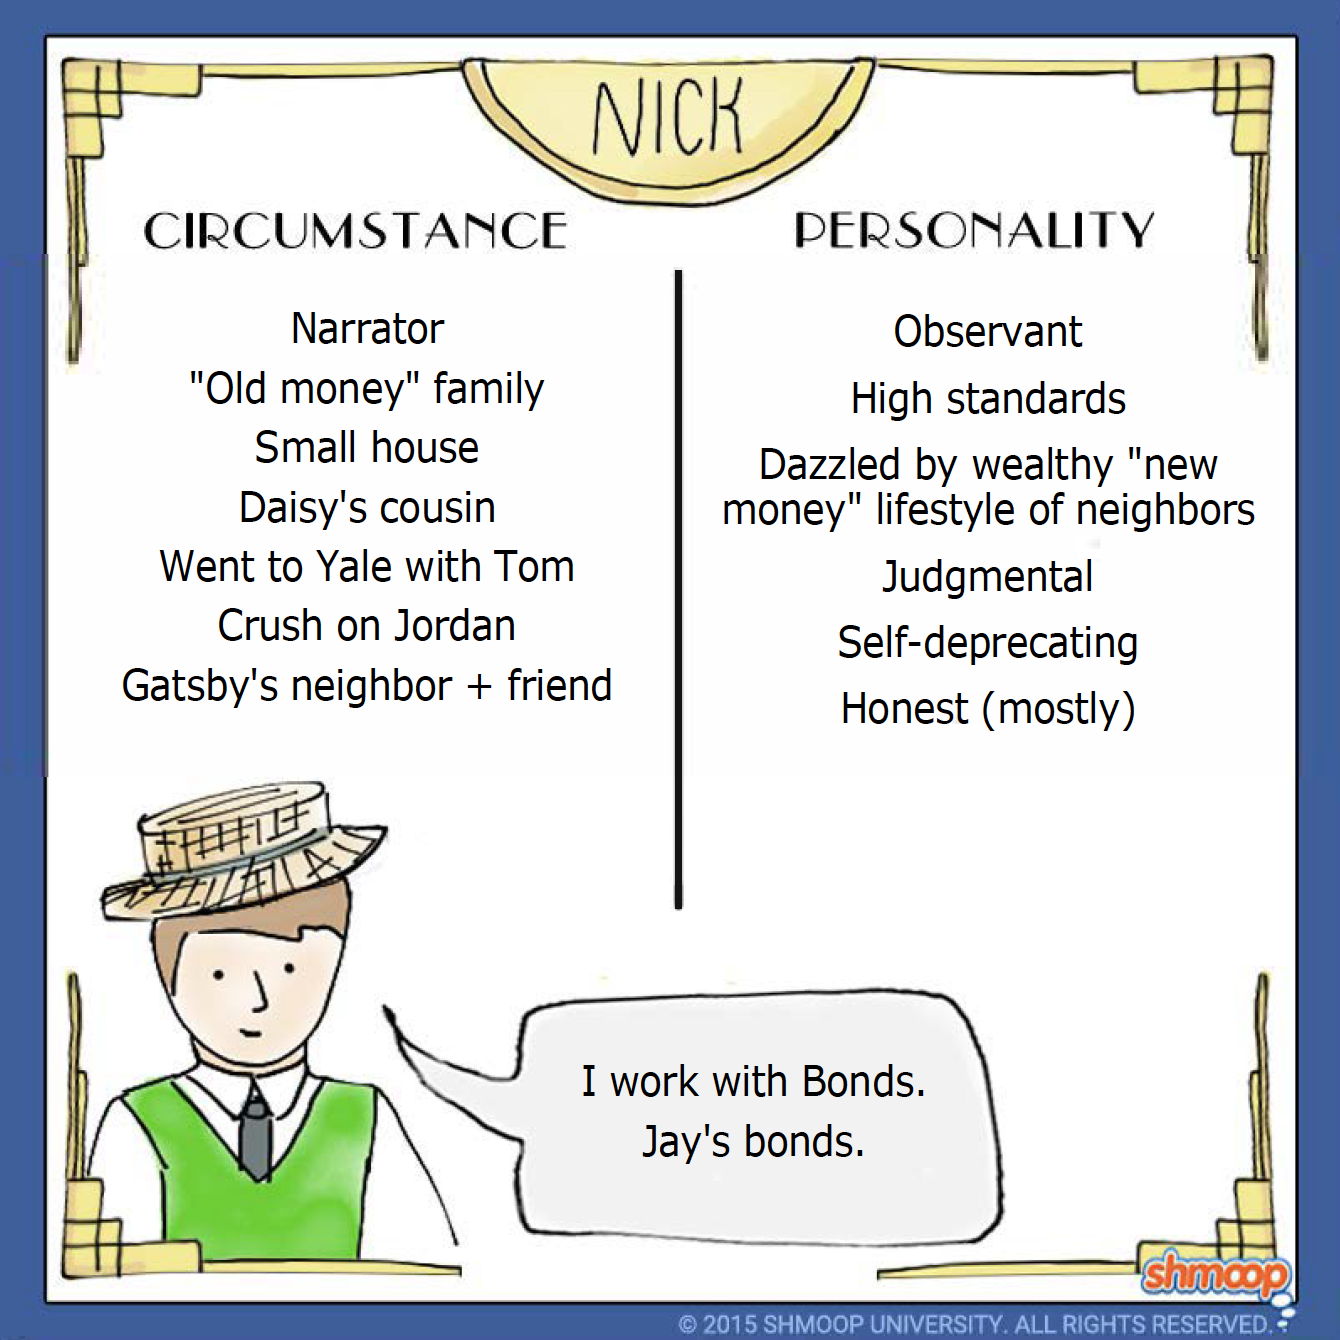 analysis of the virtuous nick carroway in the great gatsby by f scott fitzgerald The great gatsby analysis of nick uploaded by sk8erd00d on jun 19, 2005 nick carraway has a special place in the great gatsby, by f scott fitzgerald.